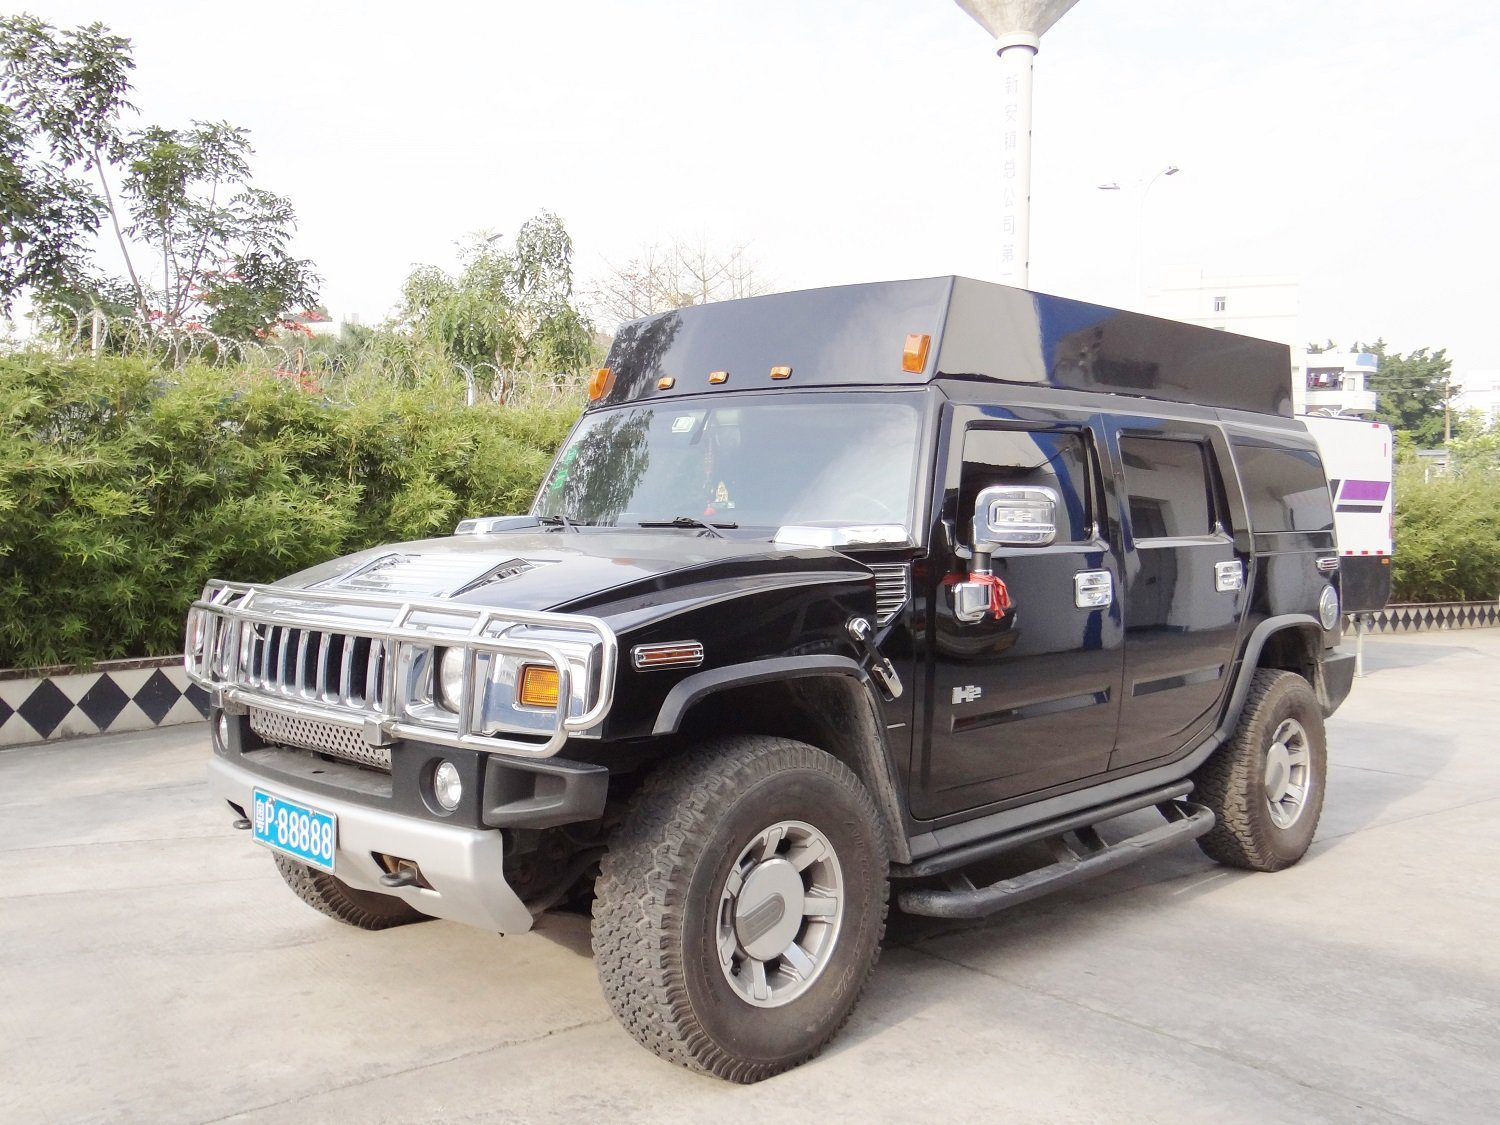 [Hot Item] Hummer Type Vehicle-Mounted Wireless Jammer Device for Police | hummer type vehicle